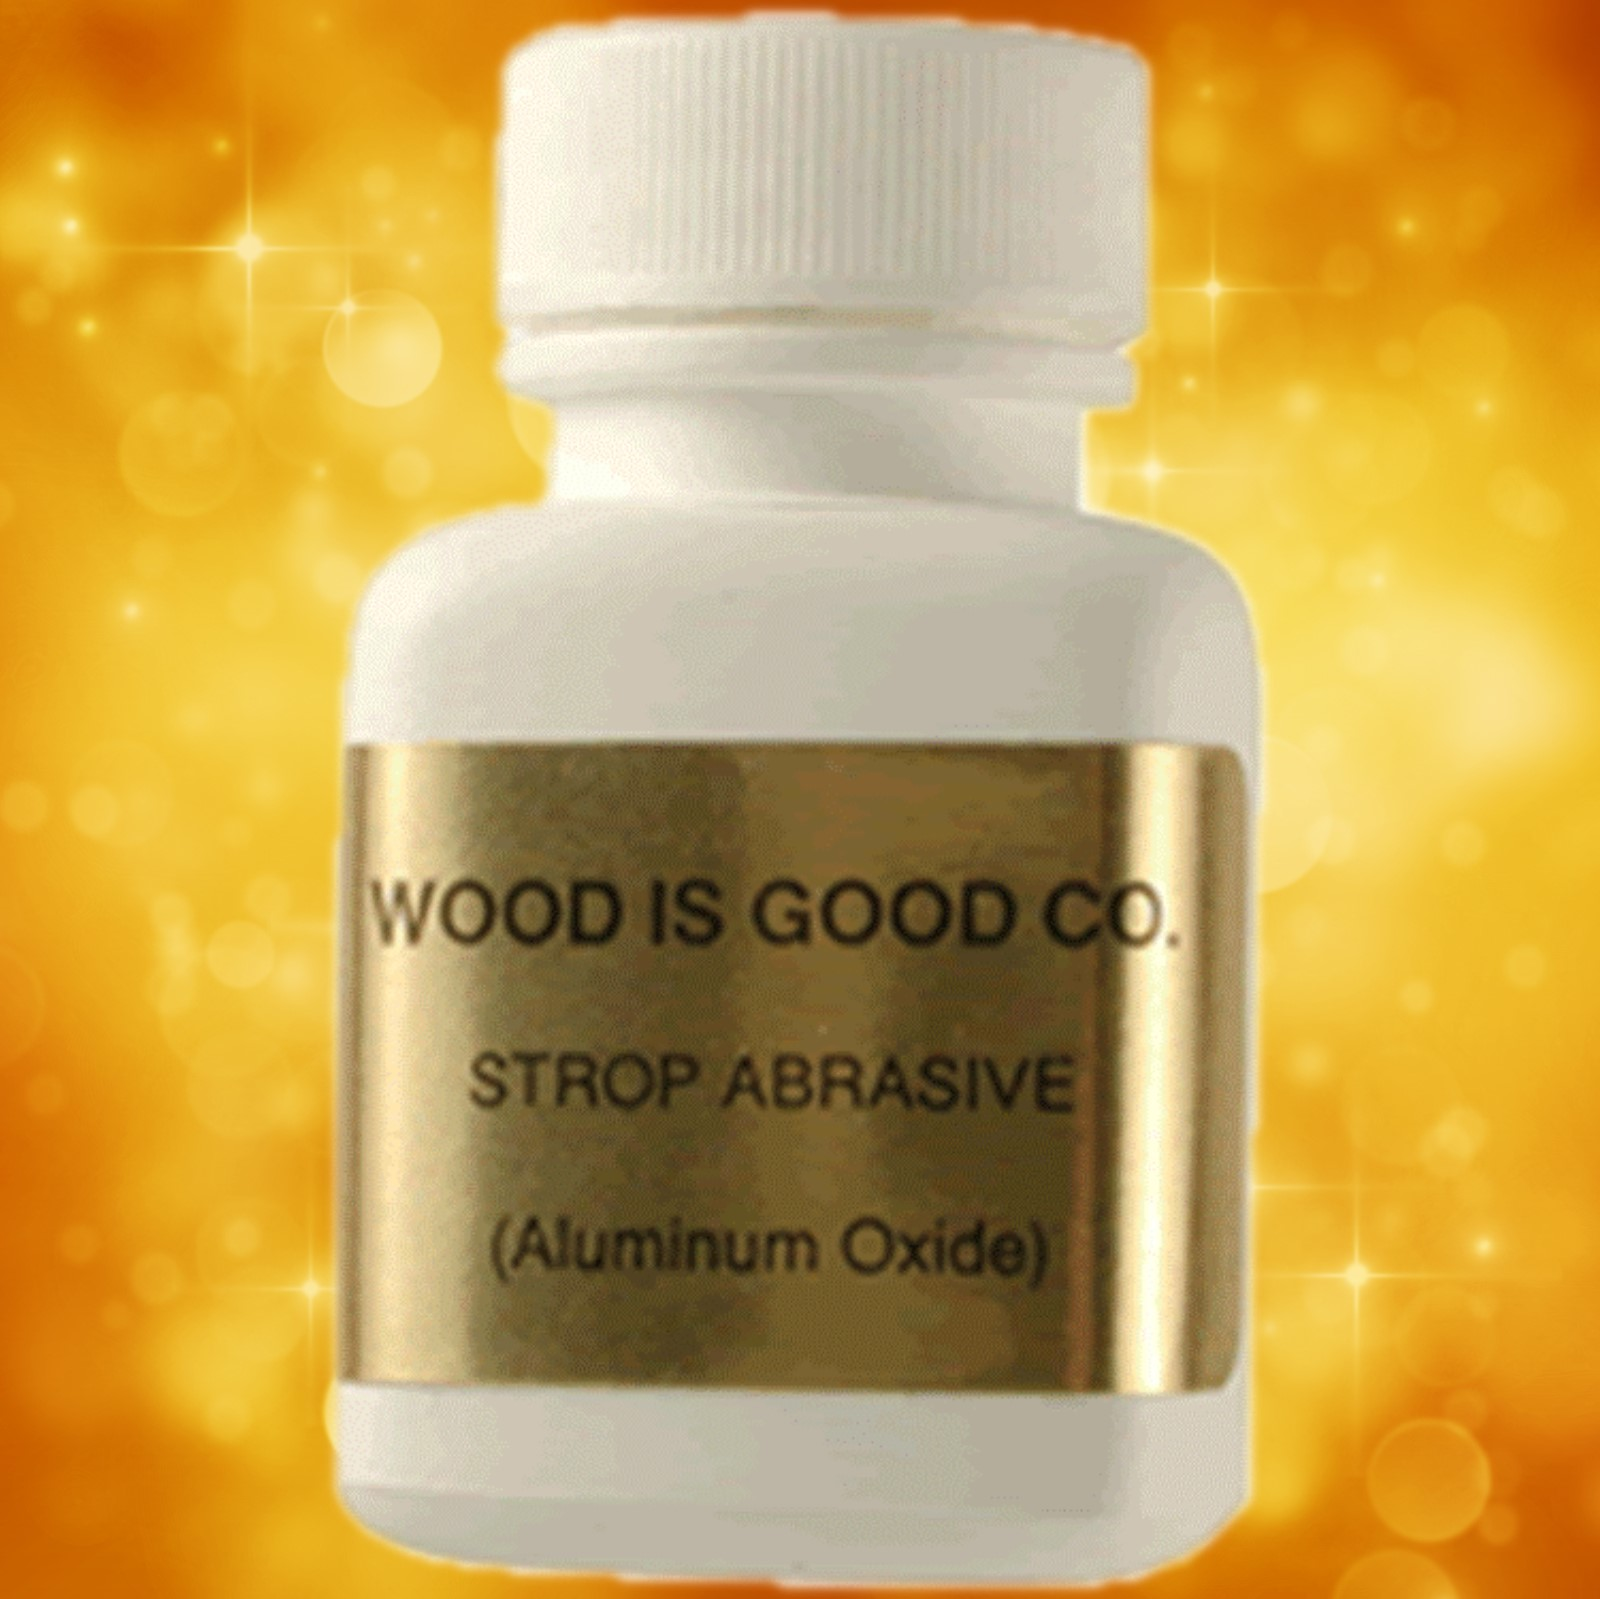 Wood is Good Strop Abrasive 170-4200 Strop Abrassive 1 oz. 170-4200